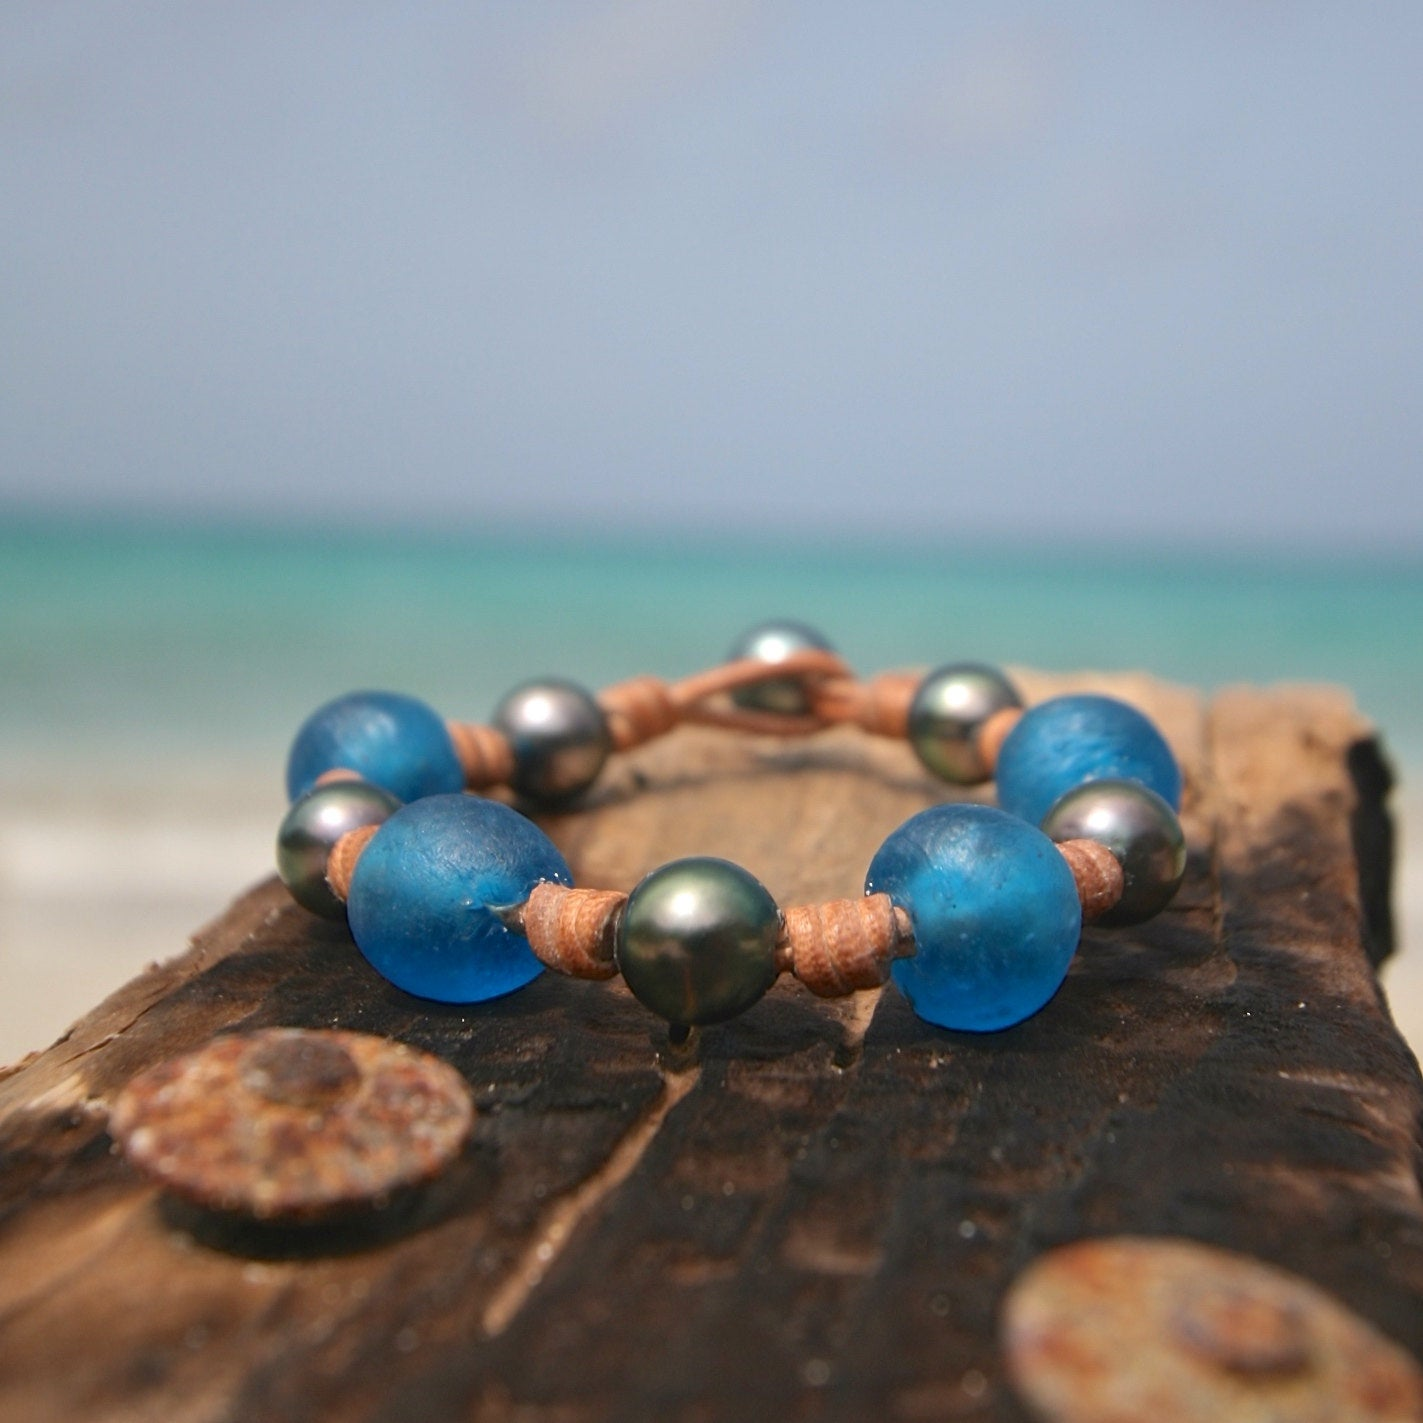 Leather and black pearls bracelet for women featuring African beads, beach summer jewelry, St Barts fashion, seaside coastal bohemian style